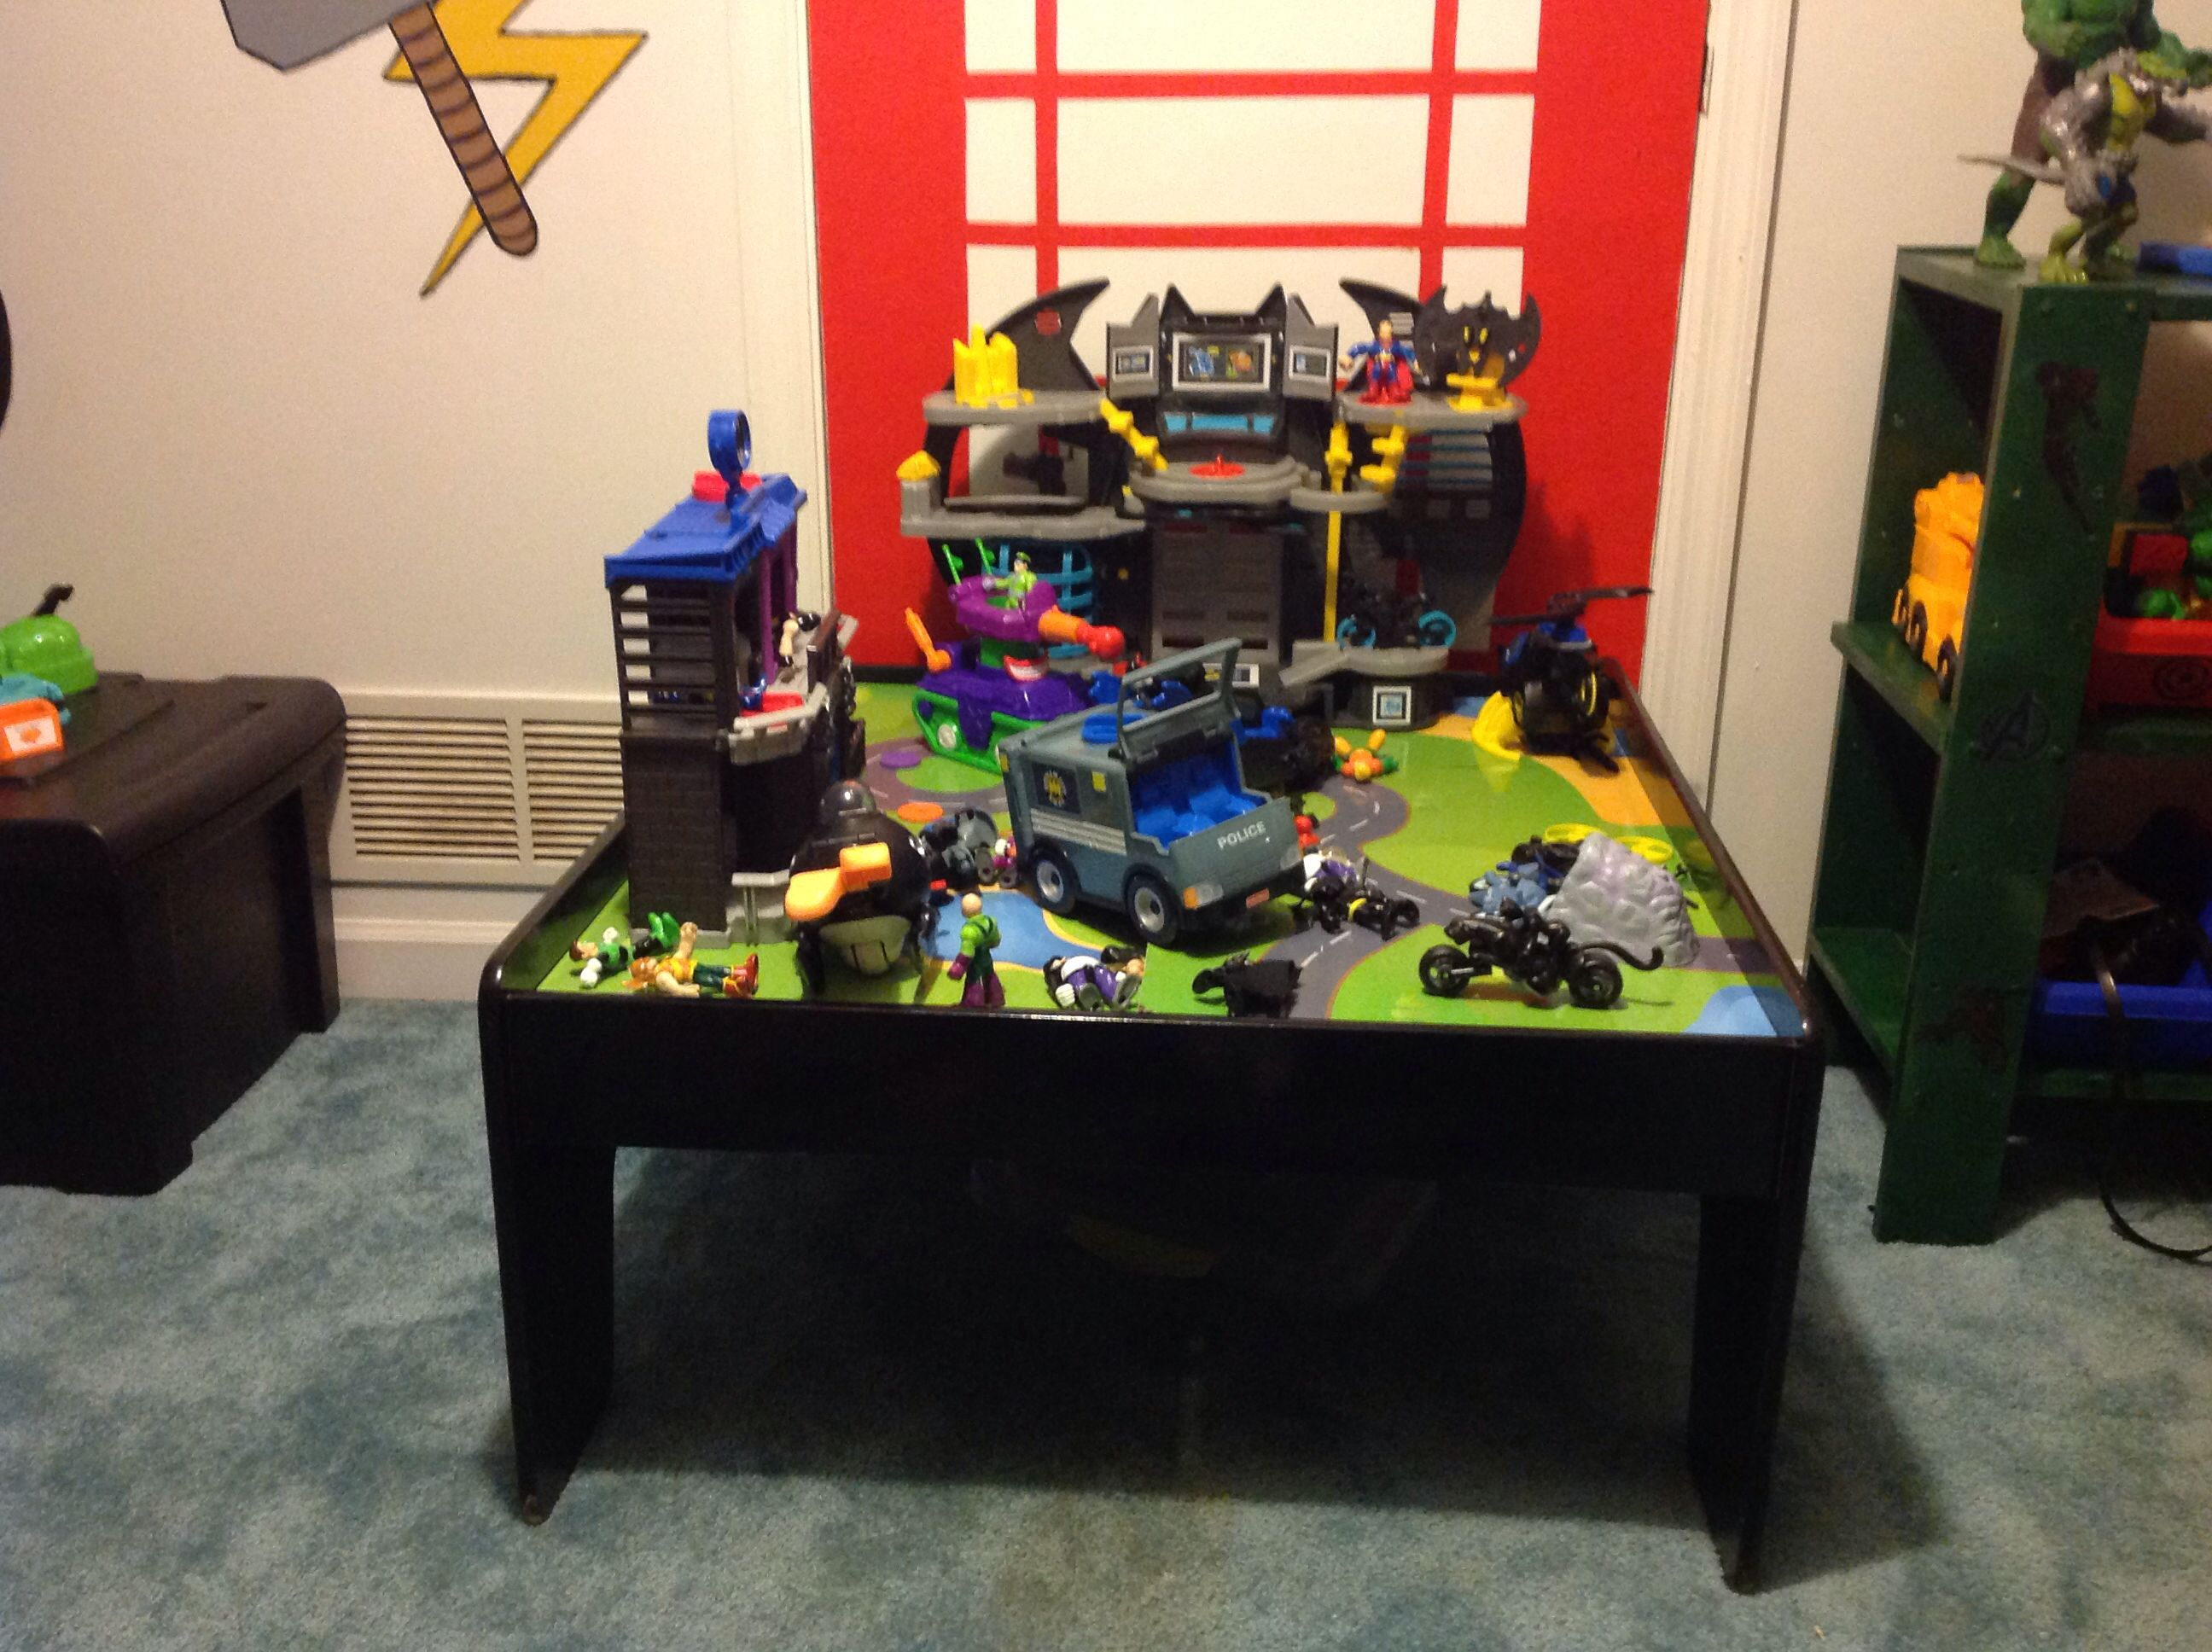 Repurposed his train table into an area for his dc figures!